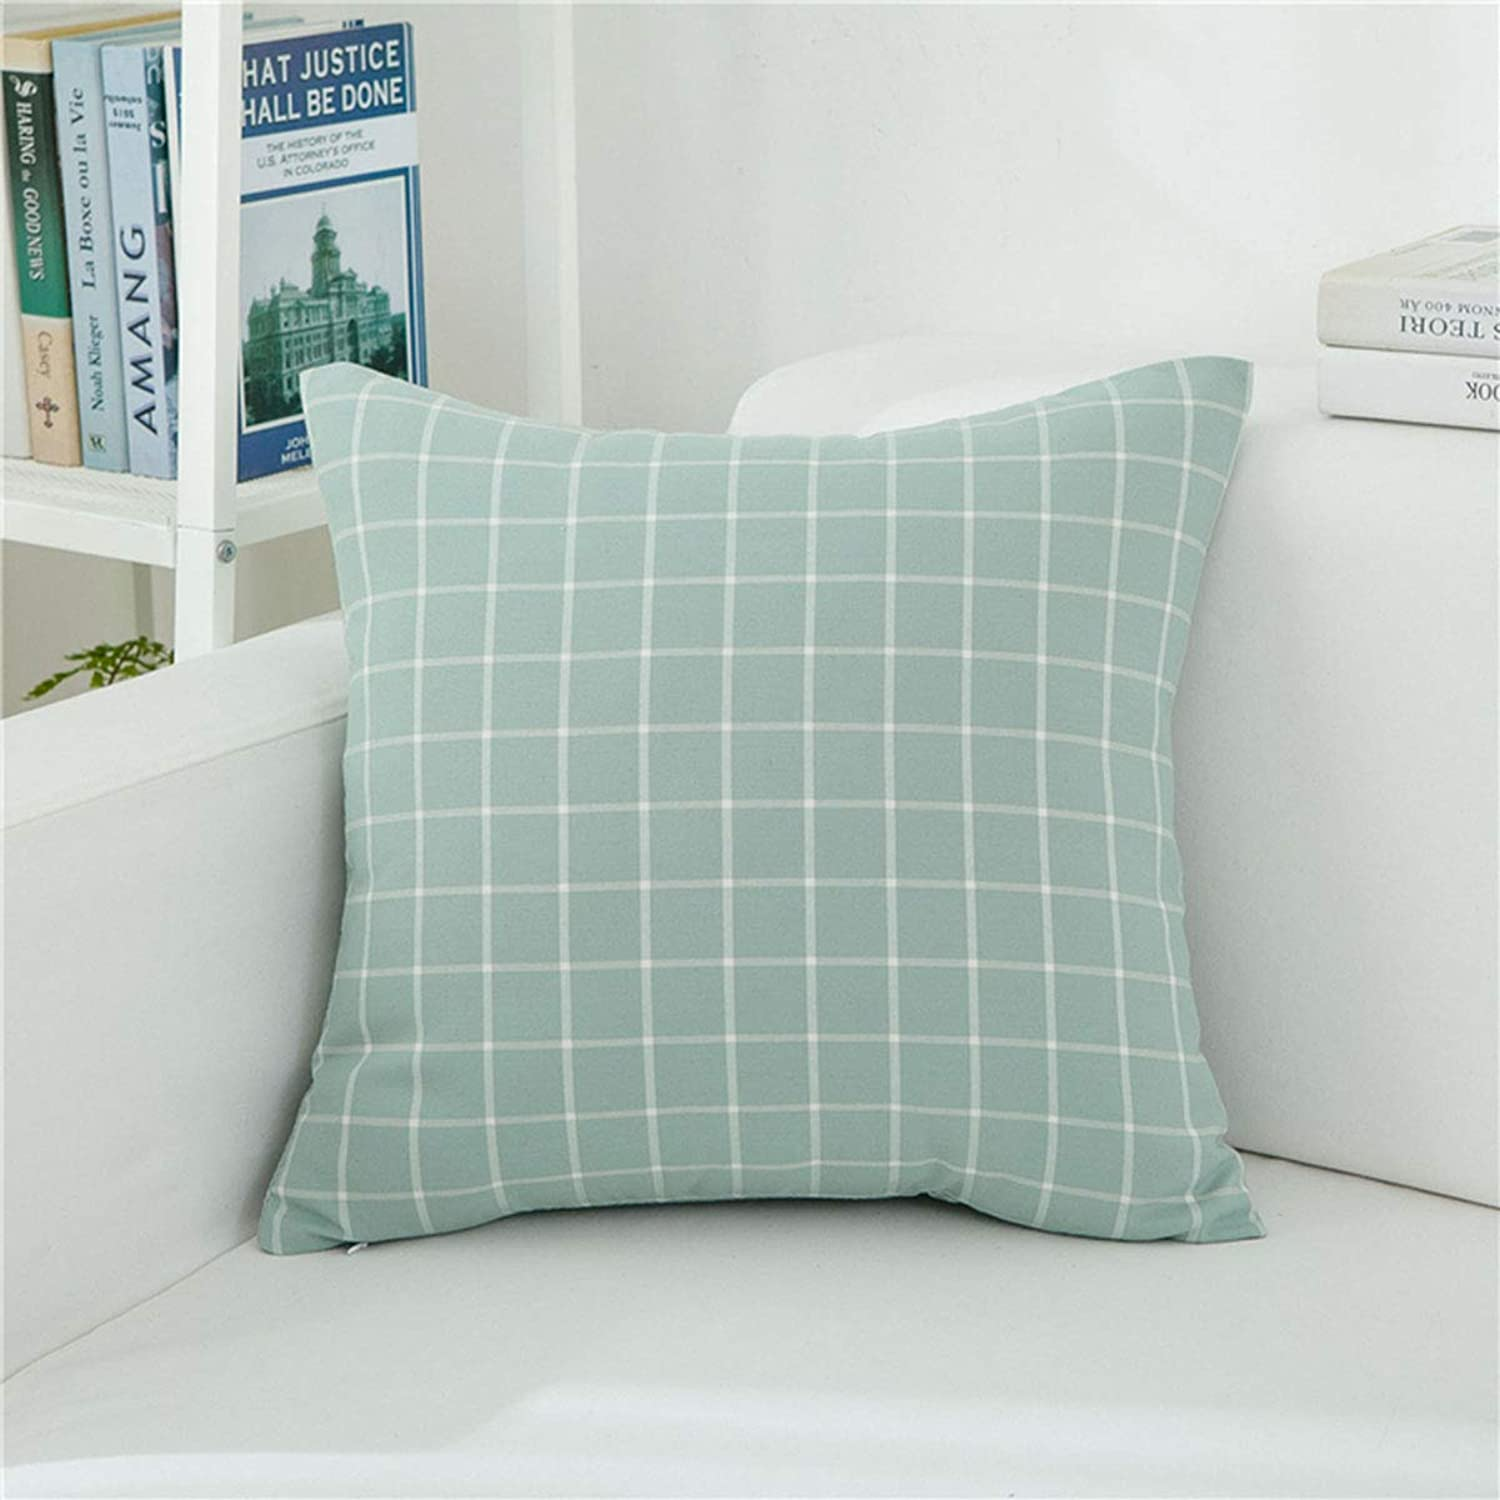 Dapang Plaid Pillow Cushion Cover Linen Square Pillow Cases with Invisible Zippered Valentine Cushion Decor for Bed Sofa, 18 x 18 Inches (color Set 1),3,45  45cm